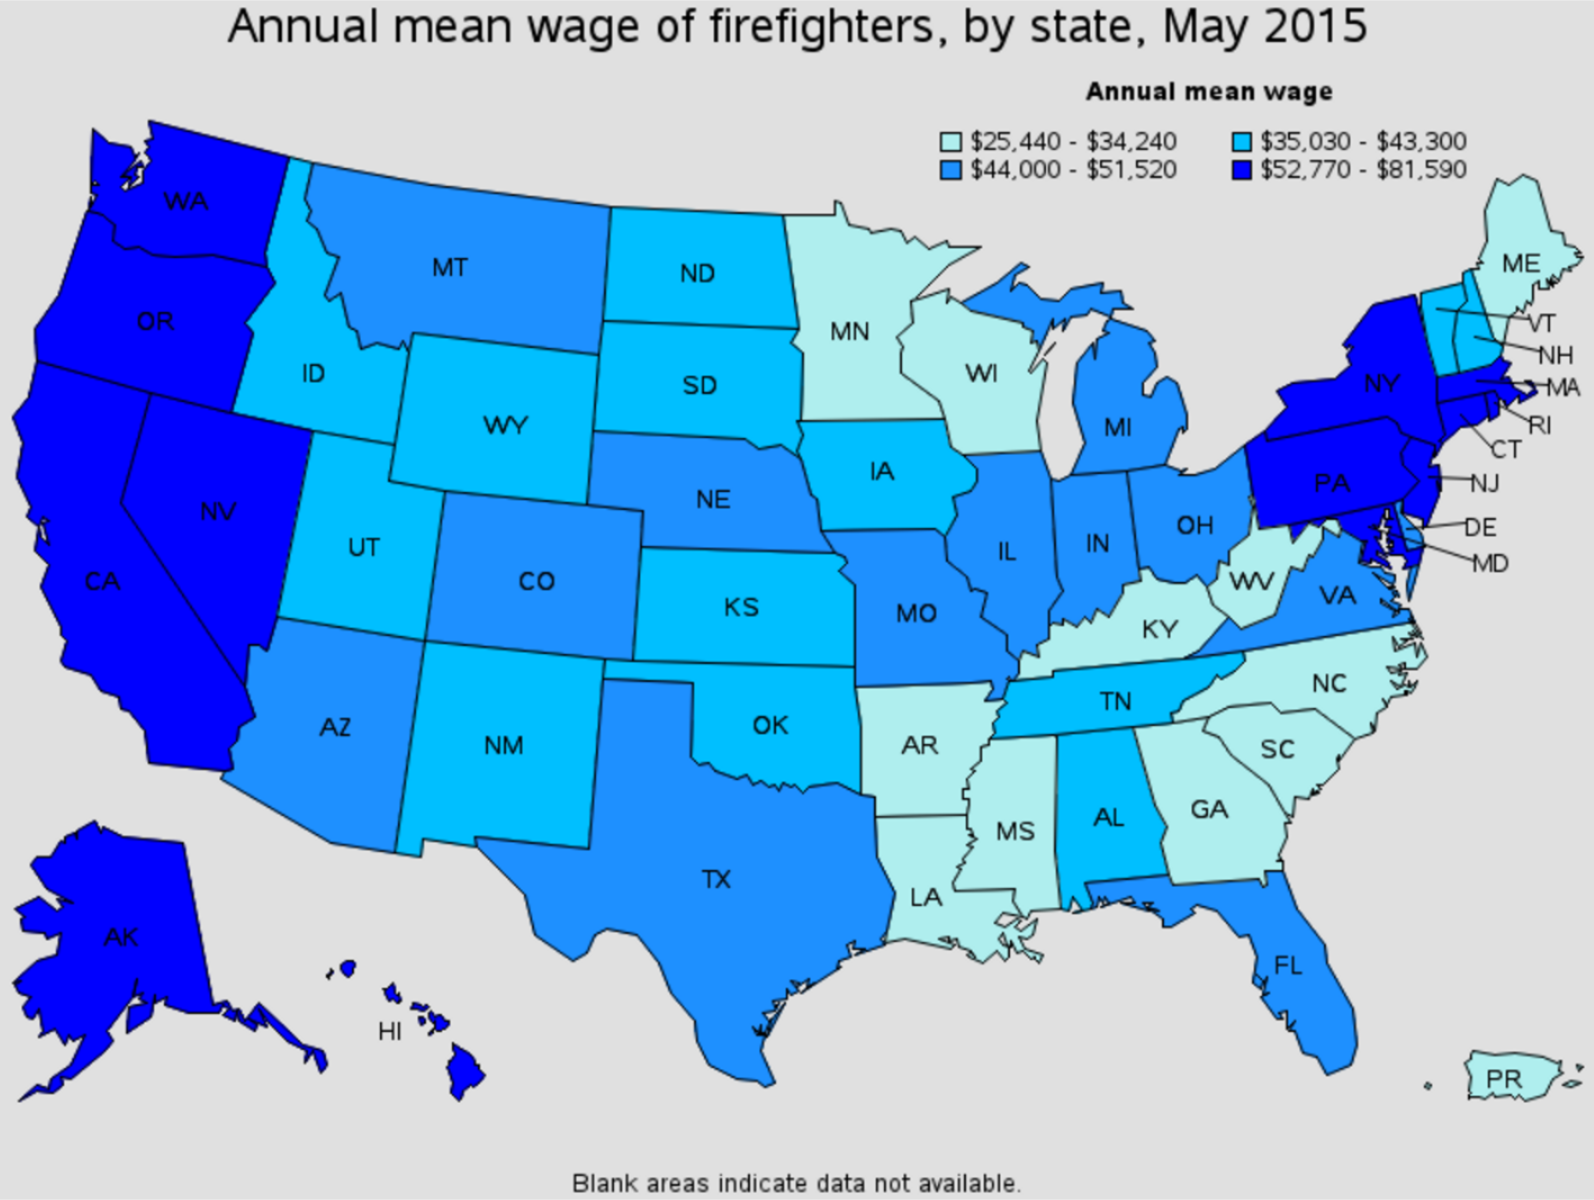 firefighter average salary by state Greensboro North Carolina